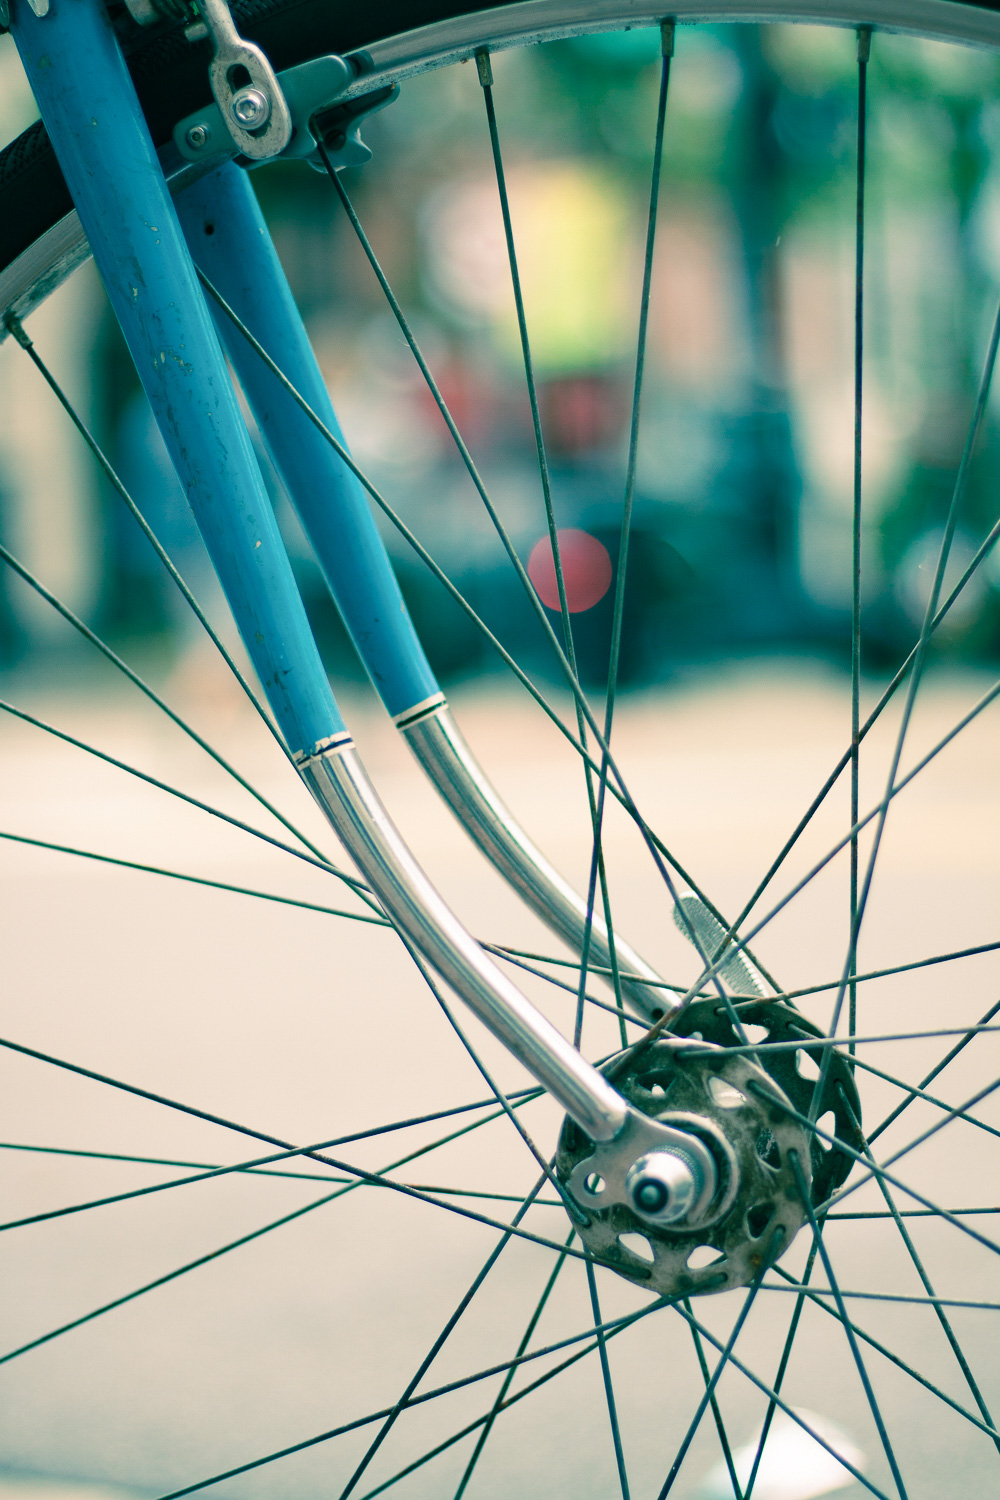 A bike wheel with slit toning applied to the photo